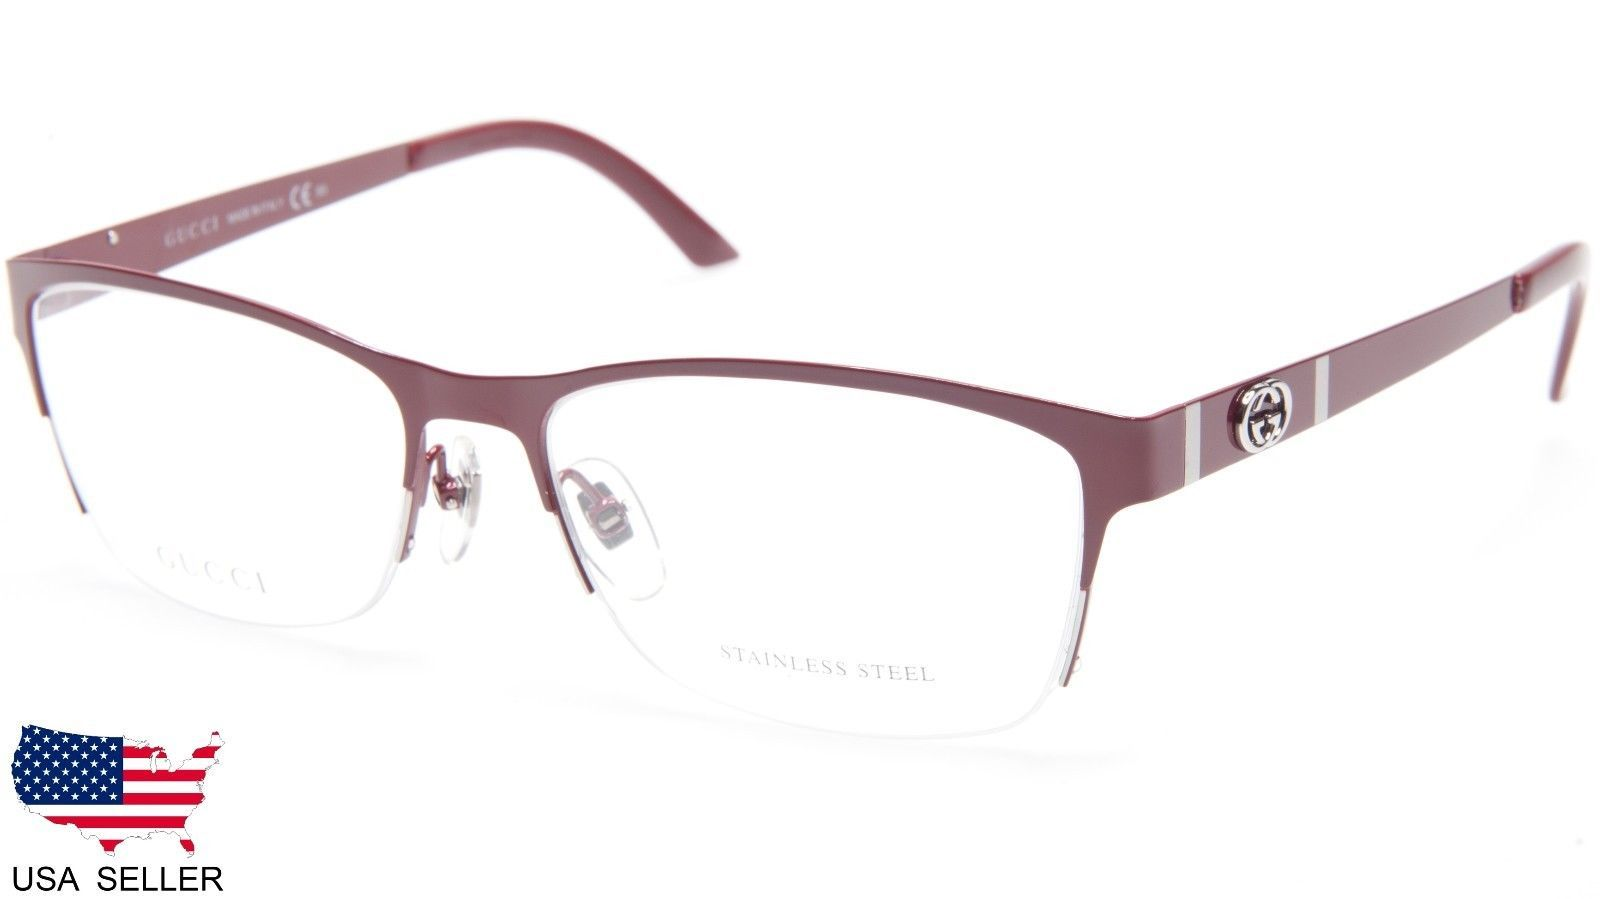 dae29bc9333 New Gucci Gg 4236 Cqm Red Eyeglasses Glasses and 33 similar items. 57